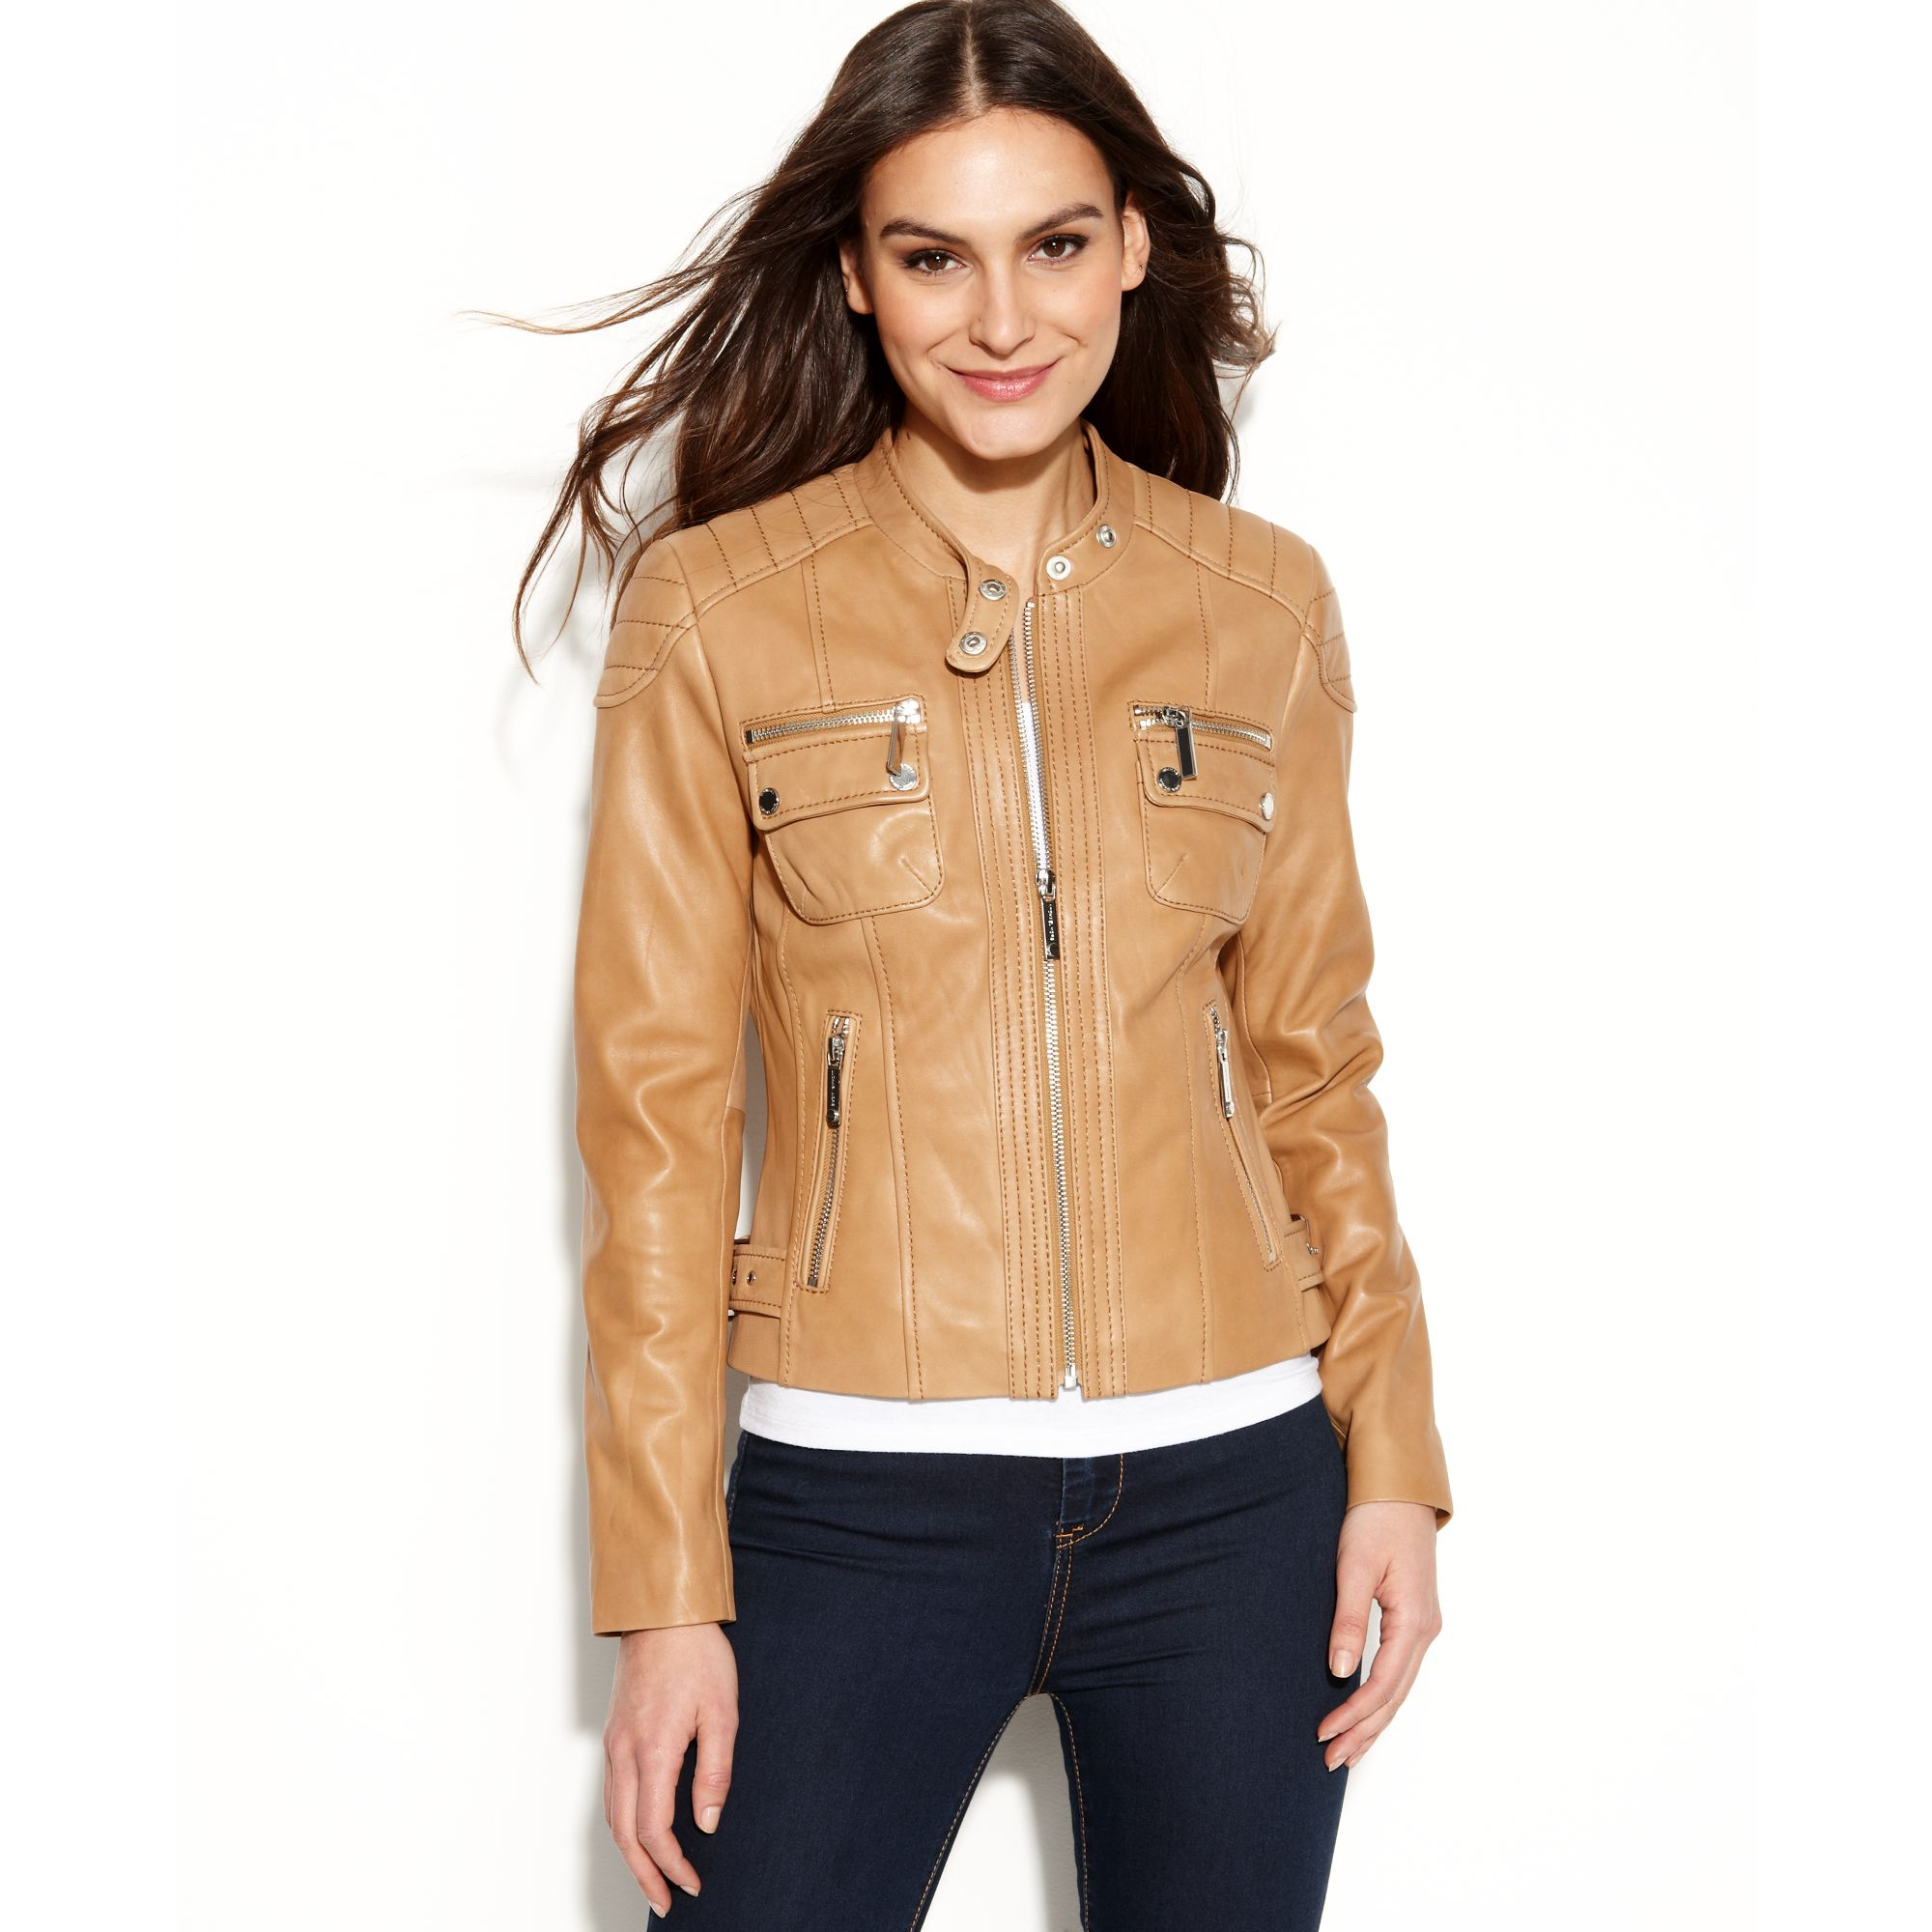 c1fb3da9efd1e Lyst - Michael Kors Quilted Detail Leather Motorcycle Jacket in Brown